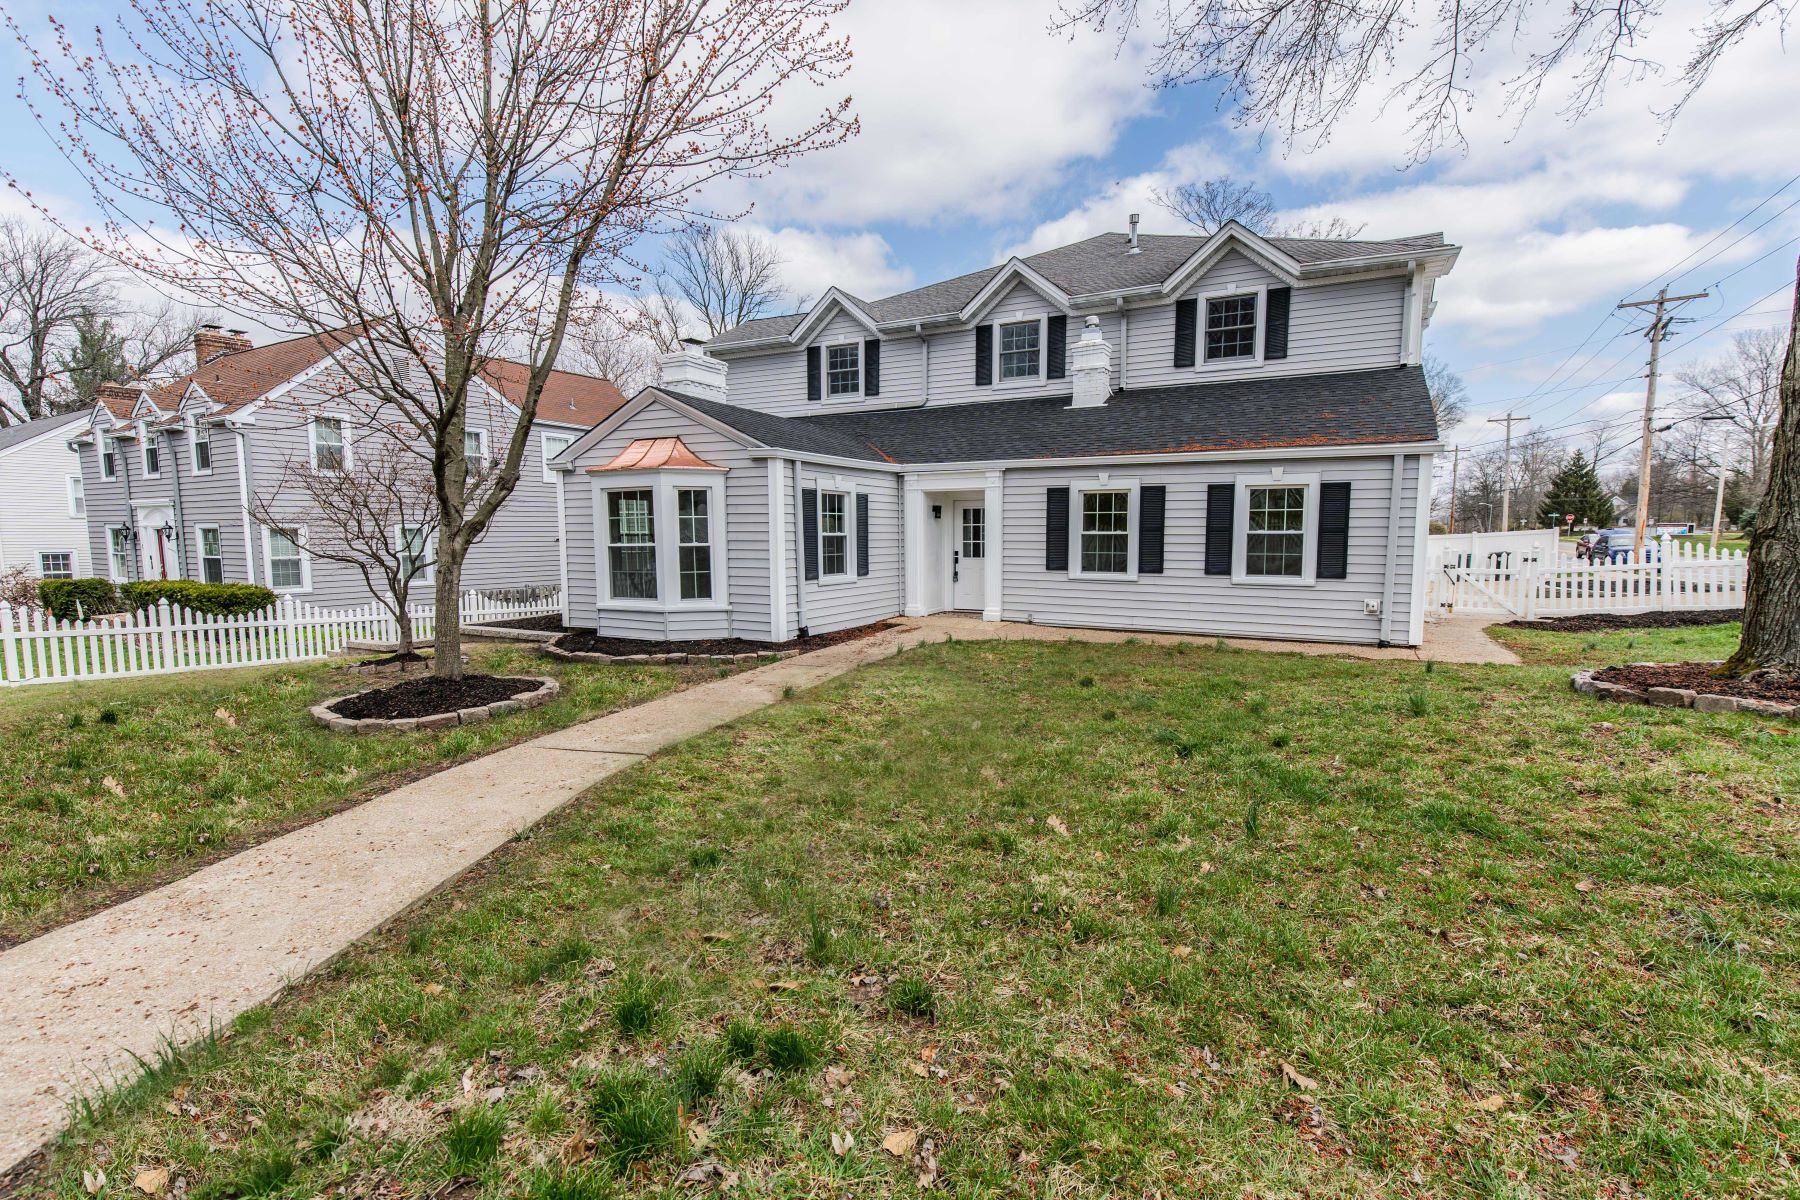 Single Family Homes for Active at Beautiful Kirkwood Home 2 Adams Lane Kirkwood, Missouri 63122 United States